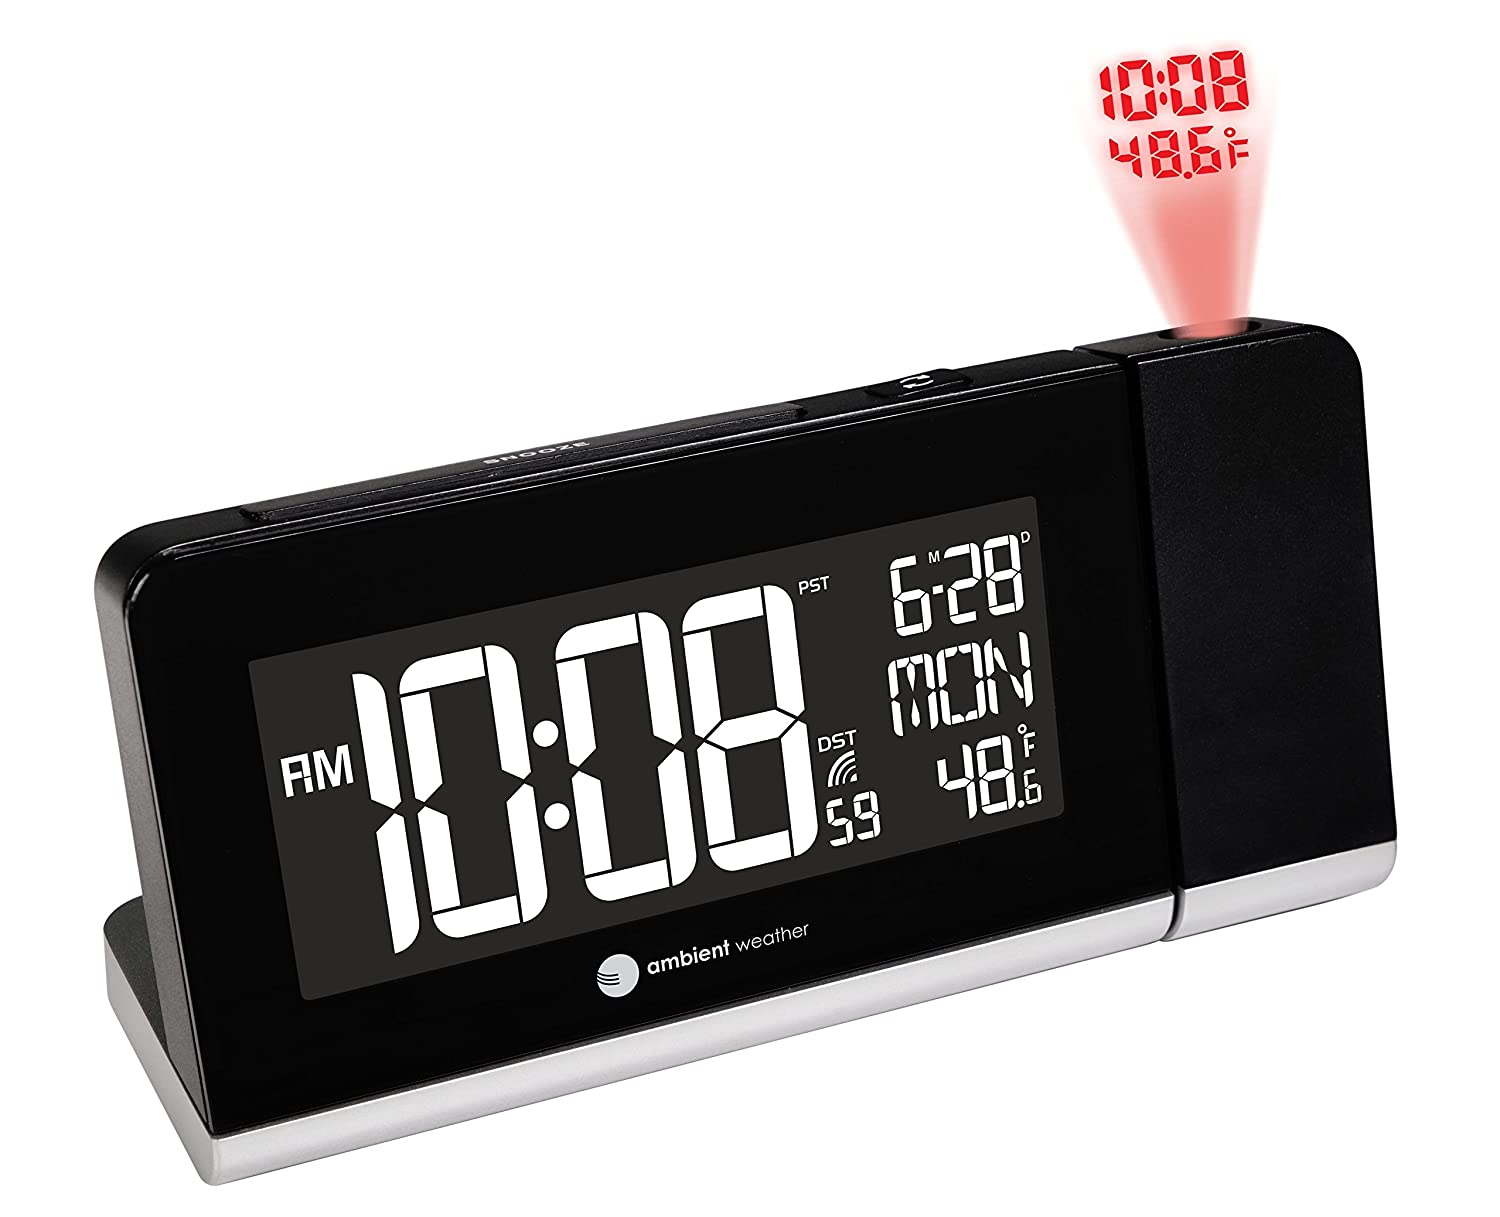 Shop amazon projection clocks ambient weather rc 8465 radio controlled projection alarm clock with color changing temperature display amipublicfo Gallery